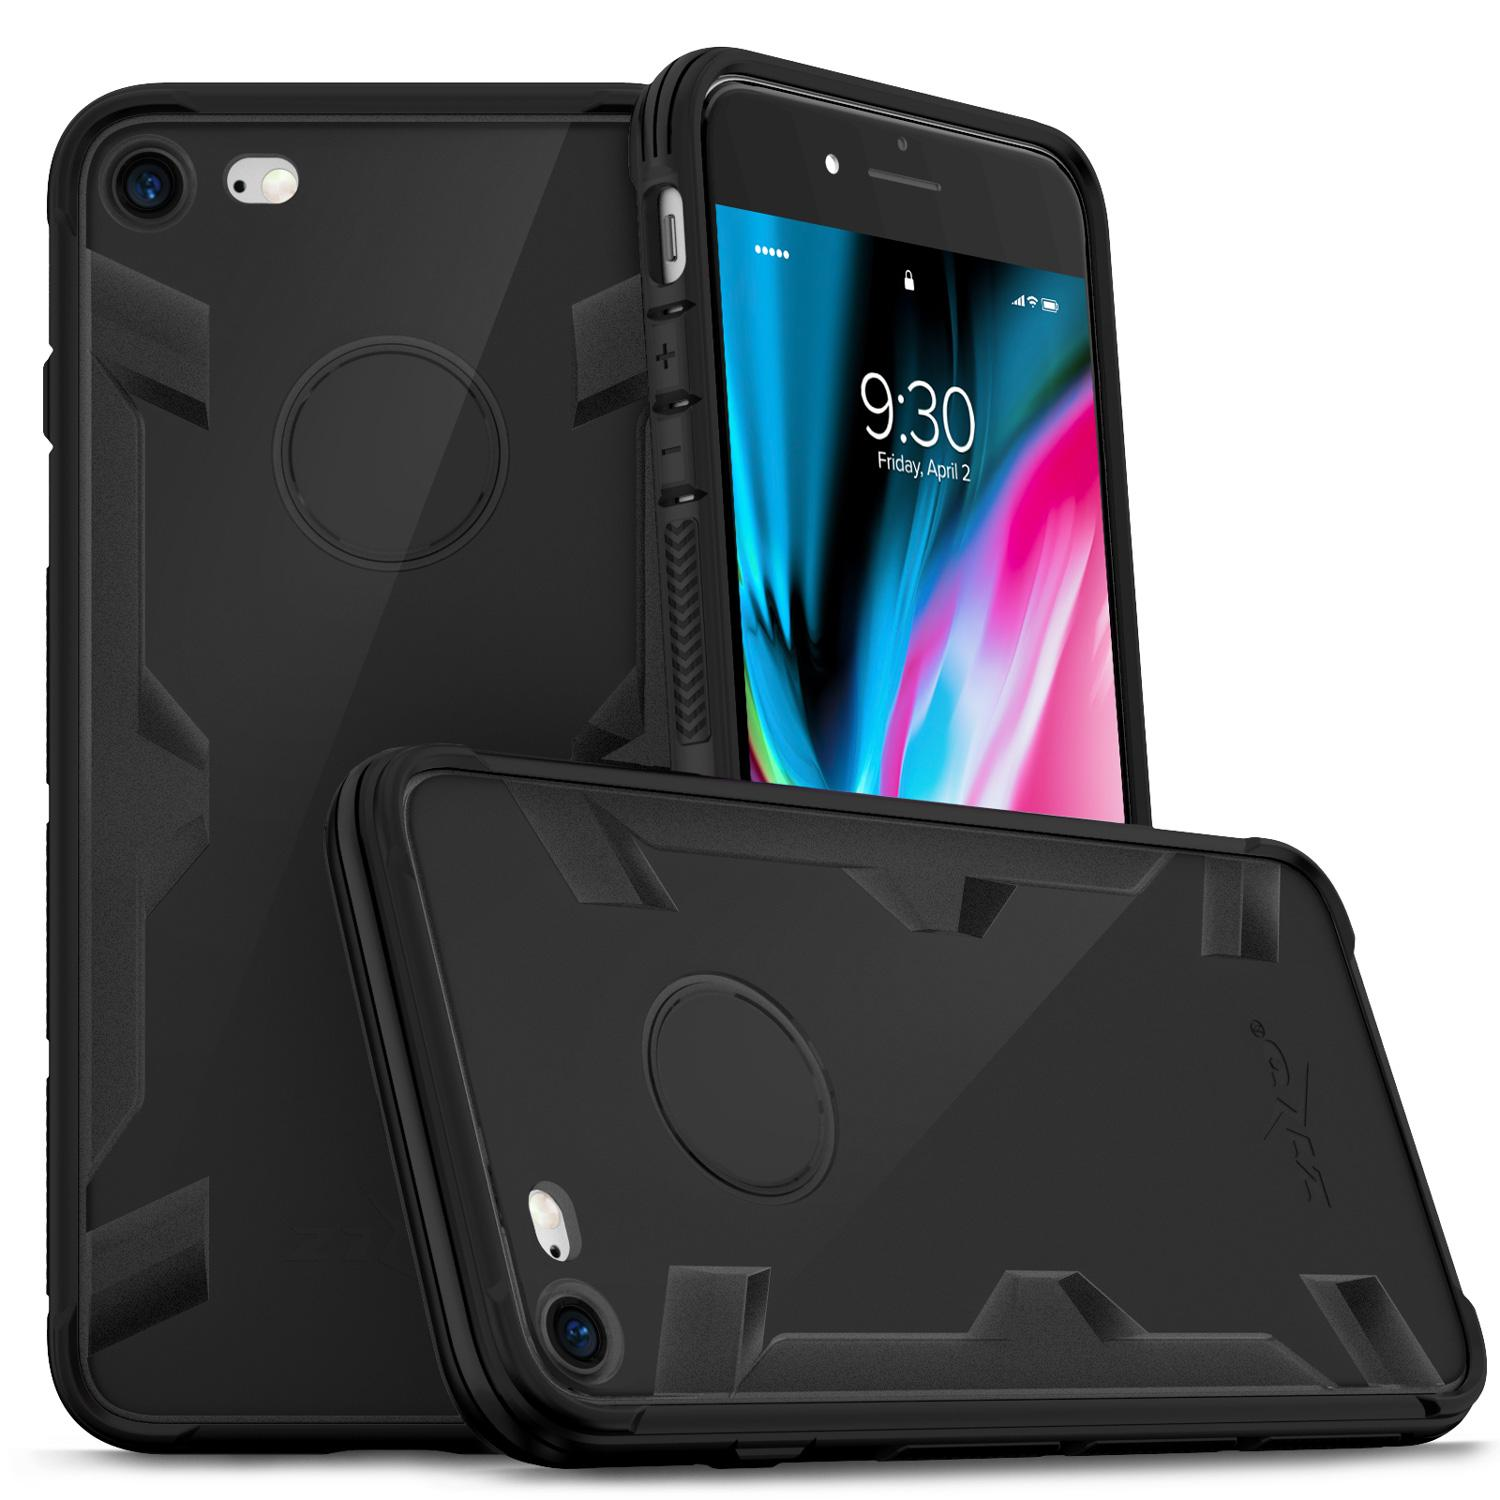 IPHONE 8 PROTON 2 CASE